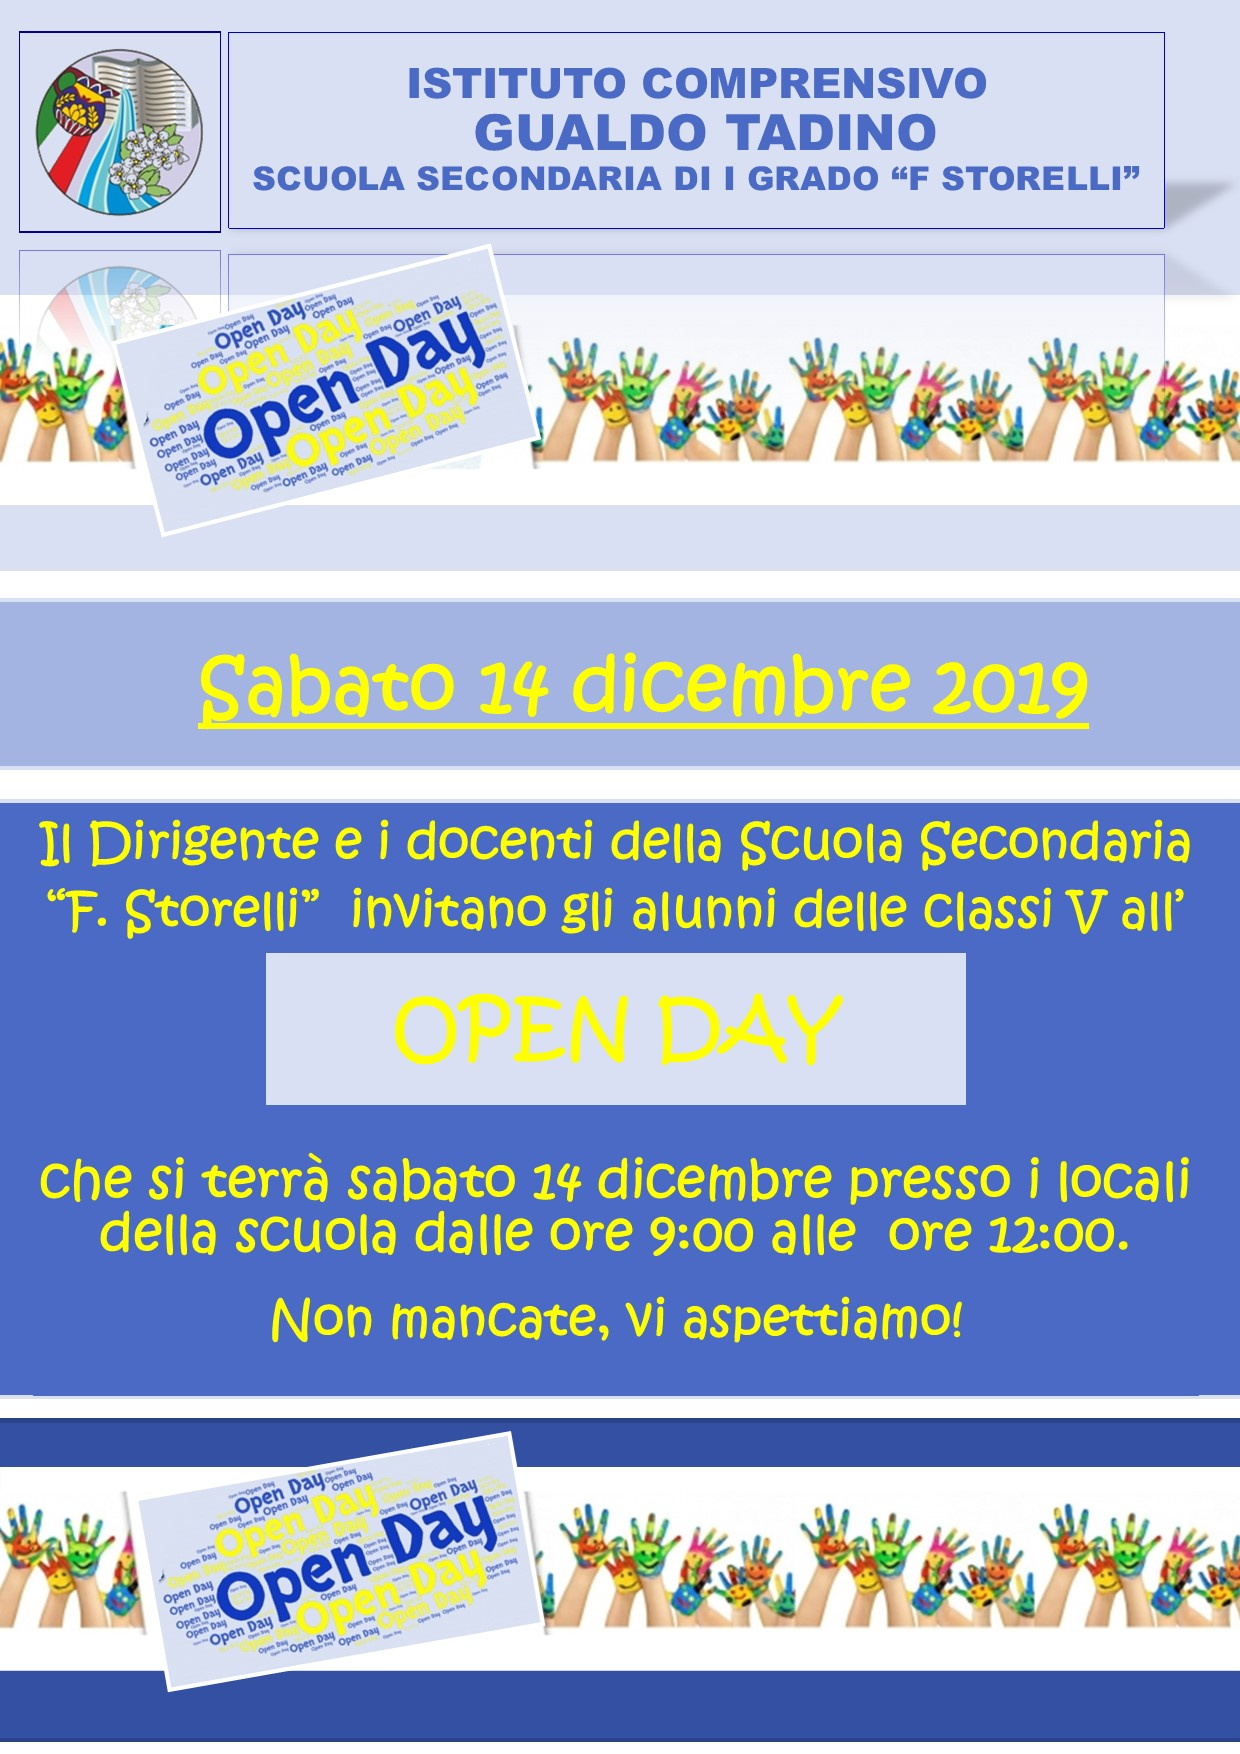 locandina%20secondaria%20open%20day%20pe